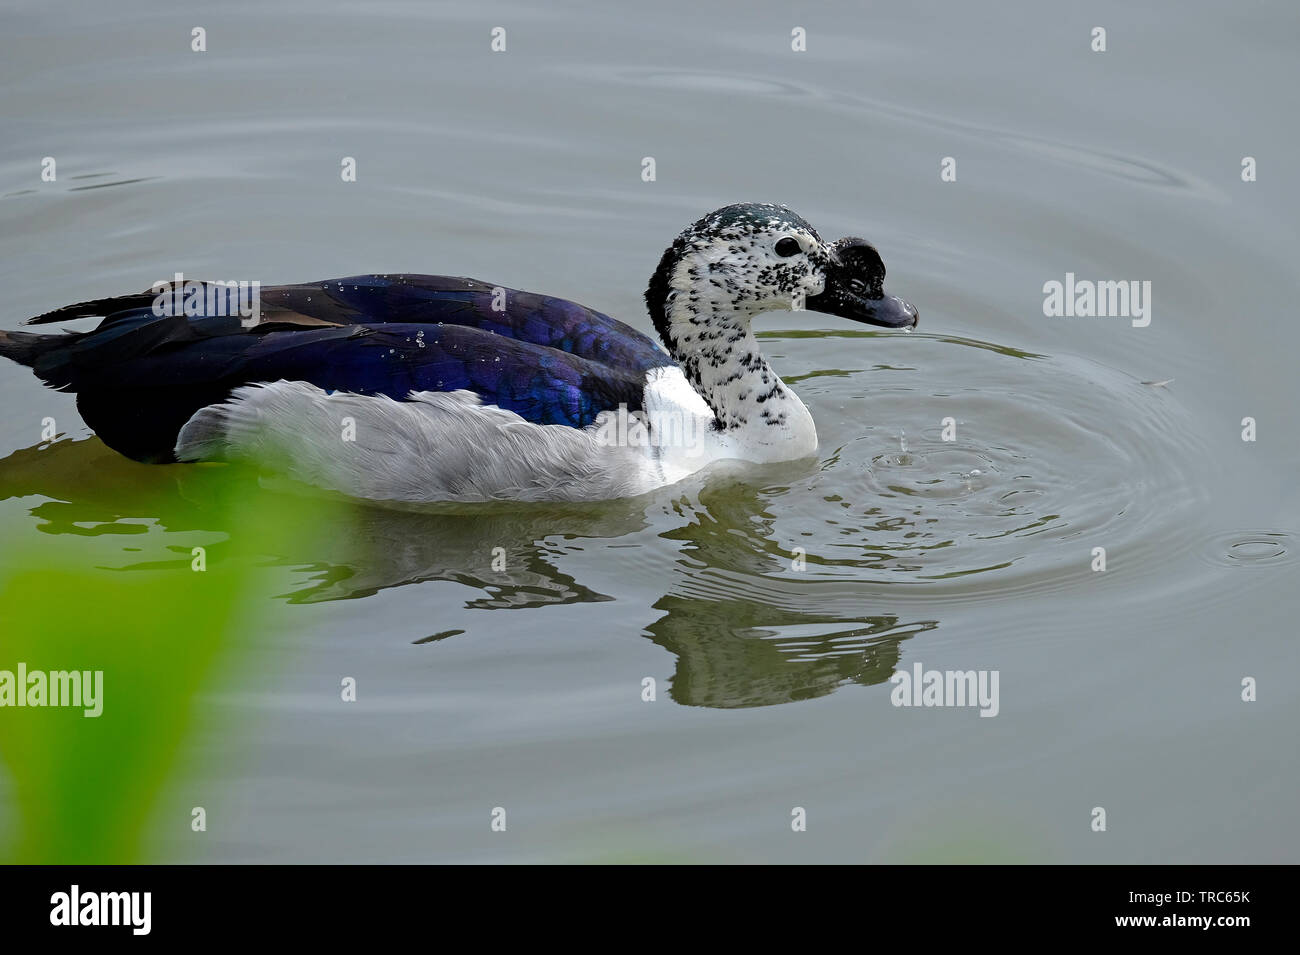 captive knob billed, african comb duck on water, norfolk, england Stock Photo